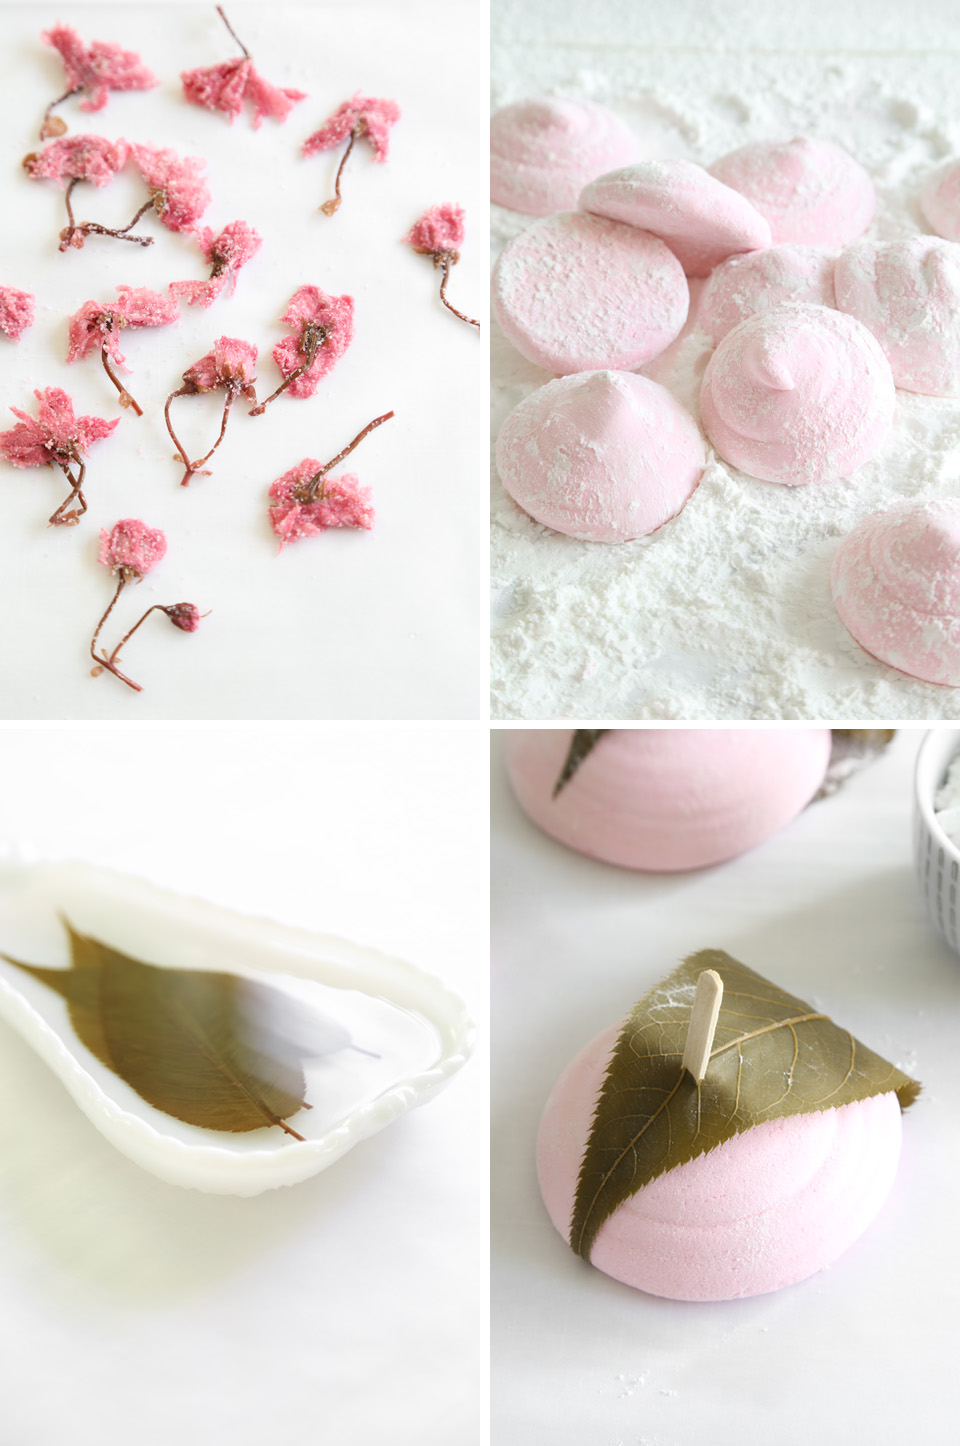 strawberry-sakura marshmallows 1.jpg